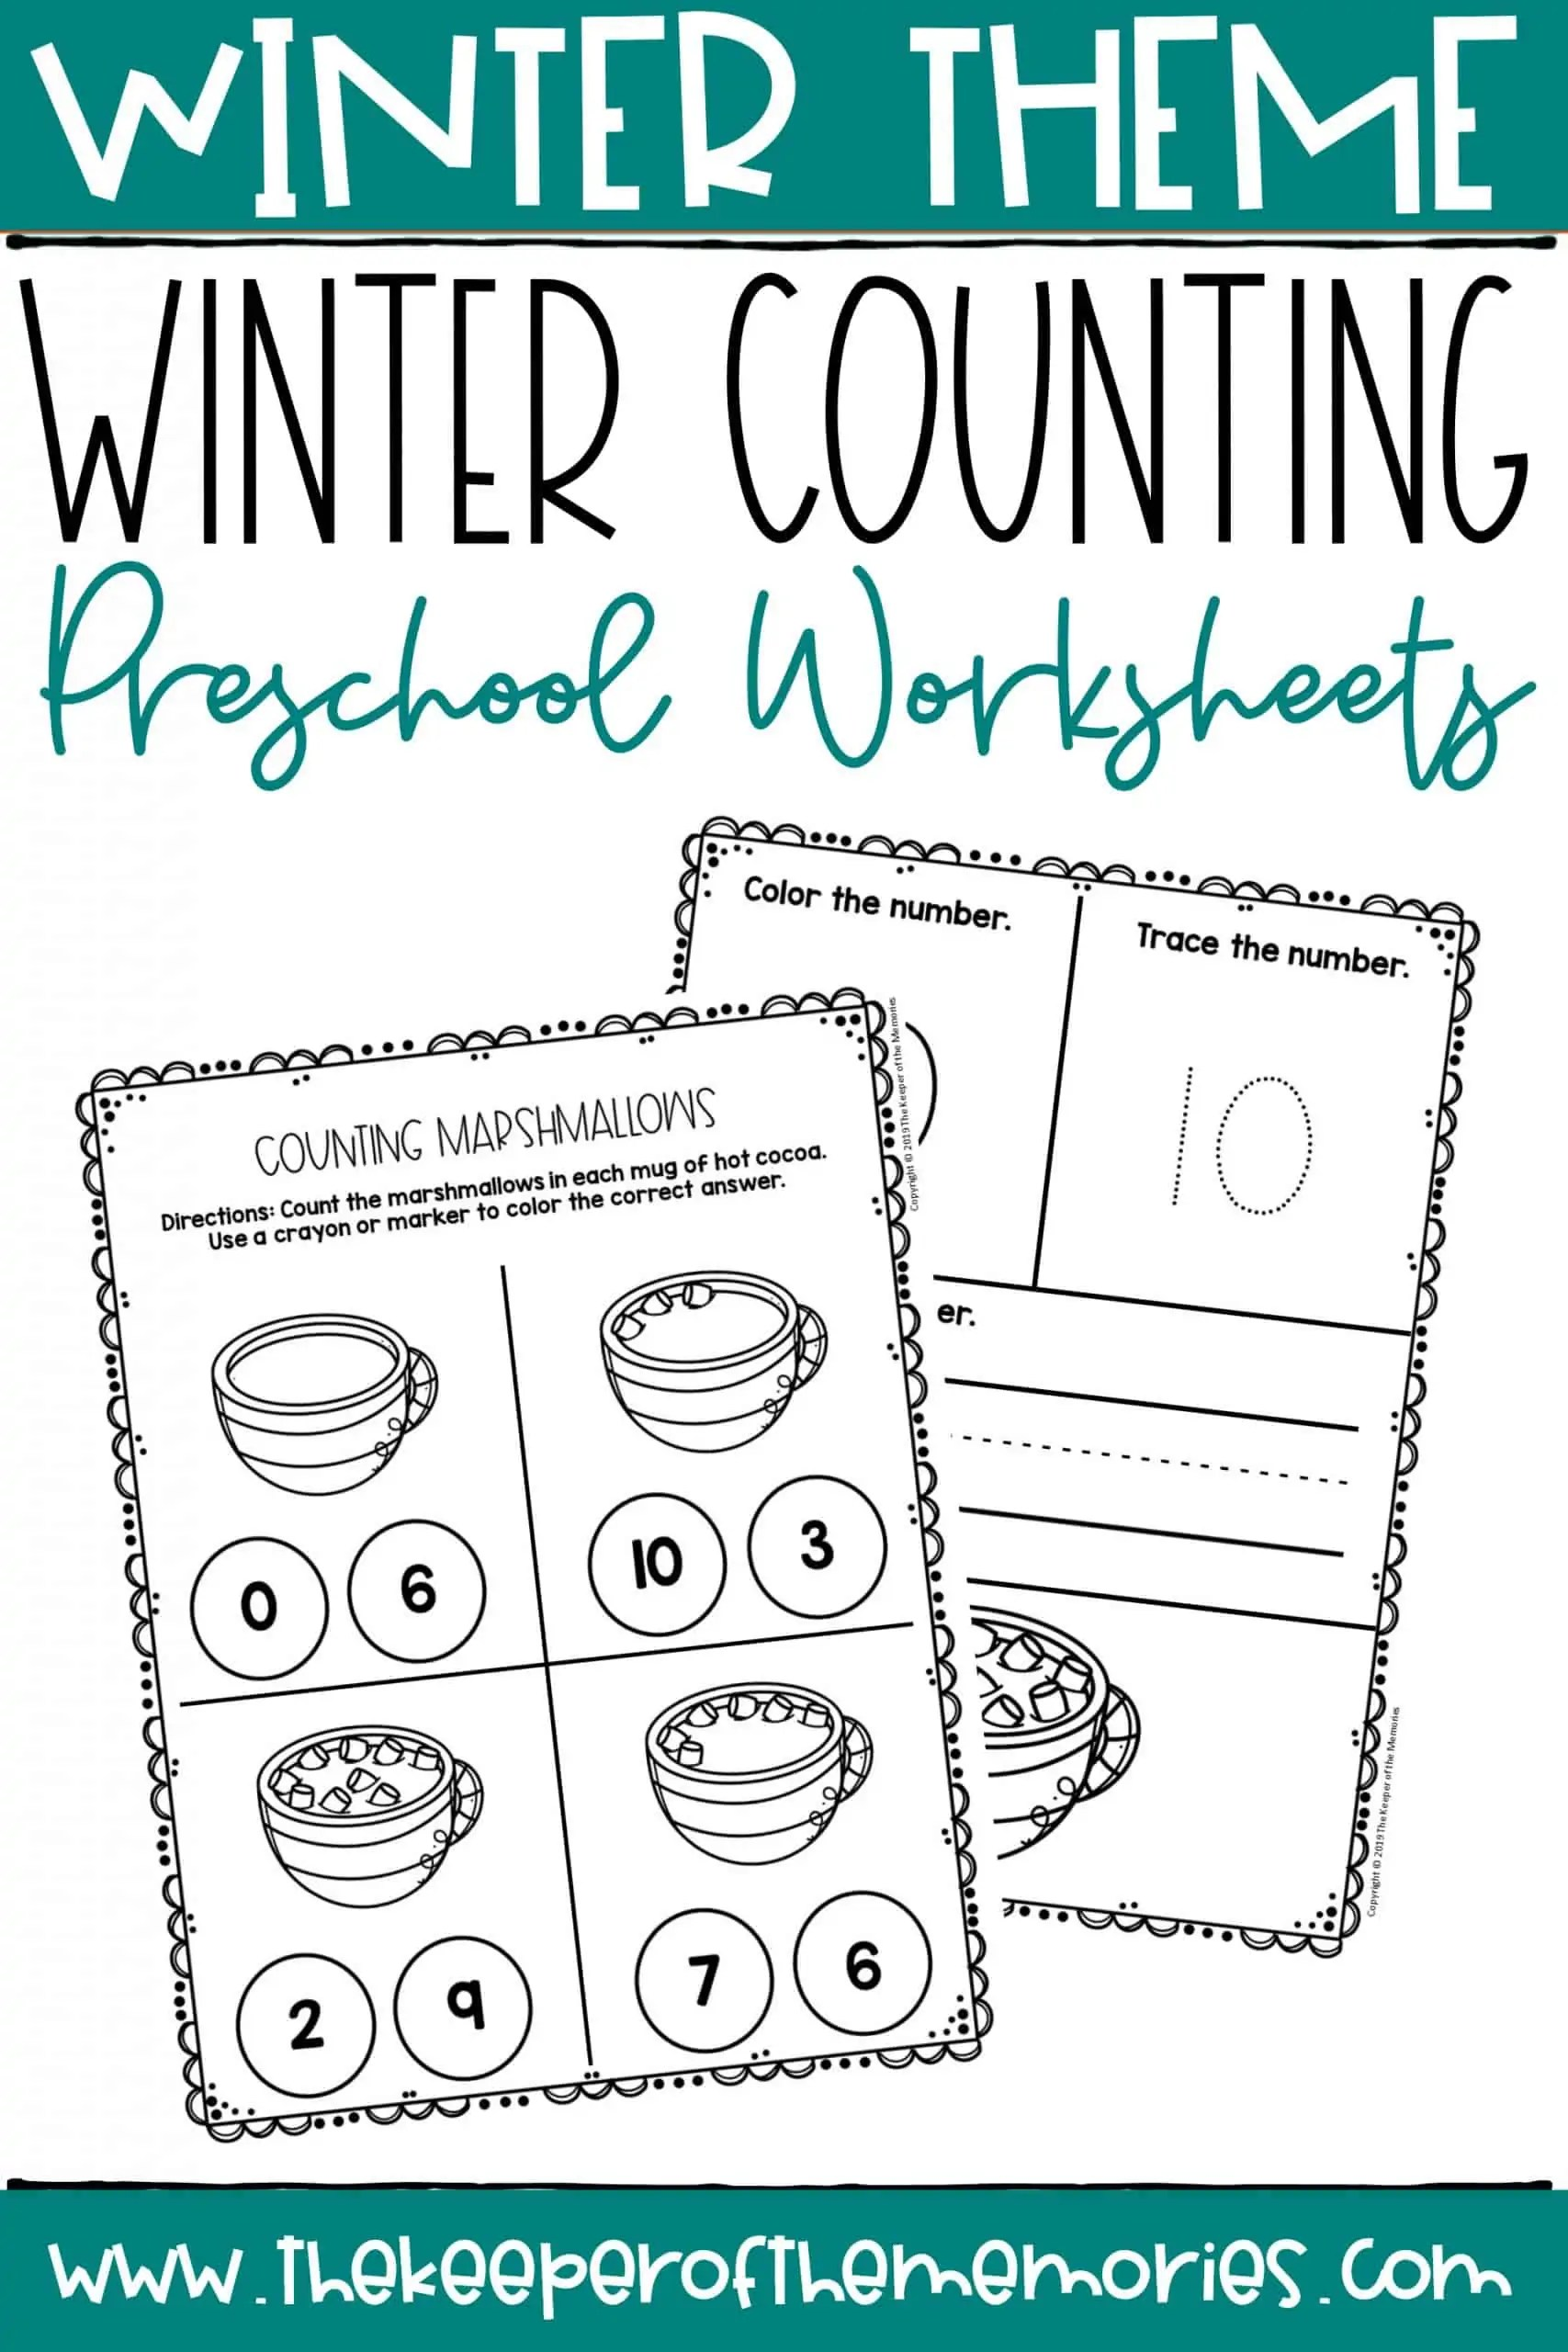 Winter Counting Preschool Worksheets